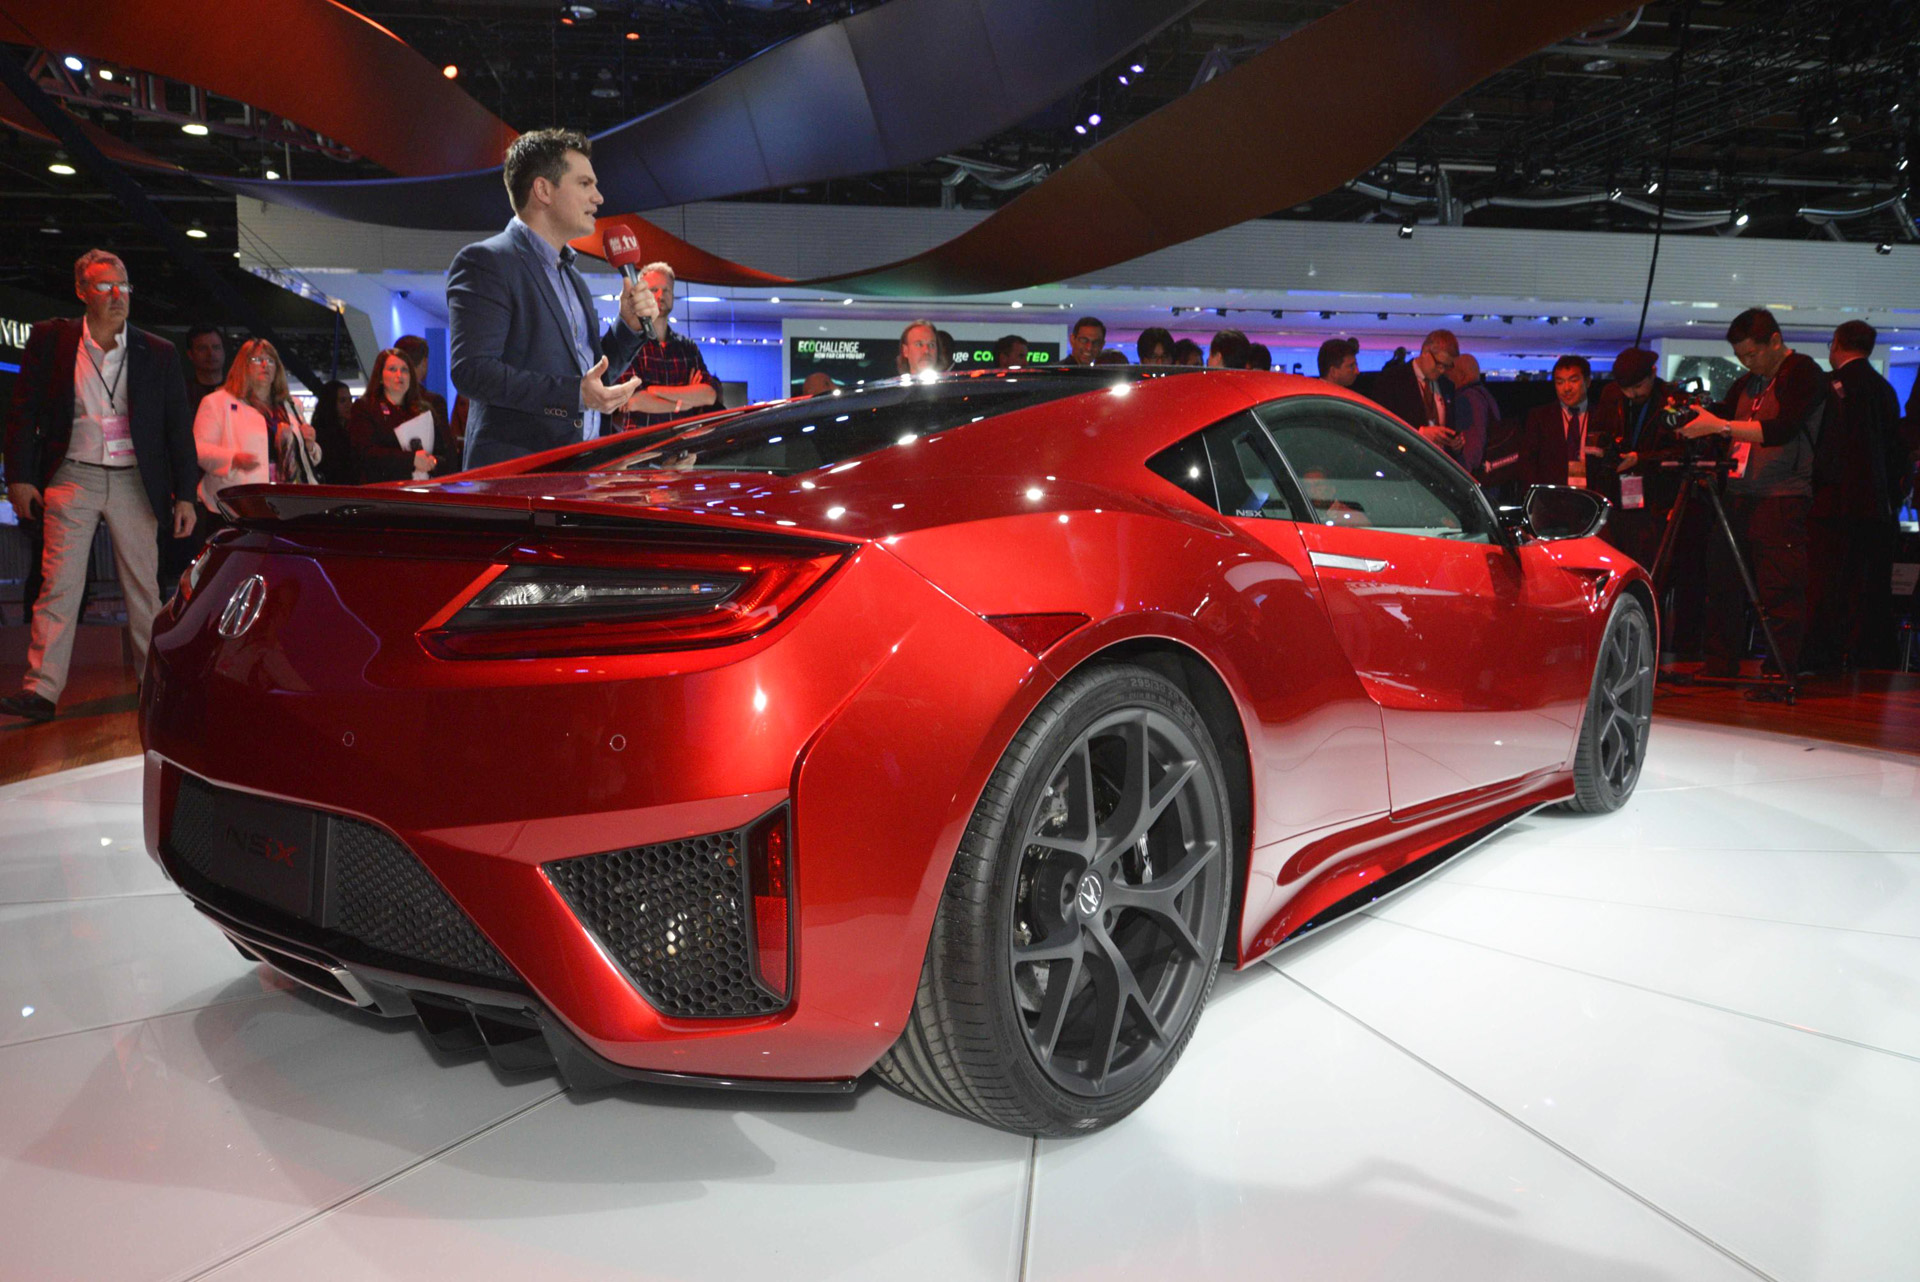 2016 Acura NSX in 2015 NAIAS. Photo credits: Motor Authority